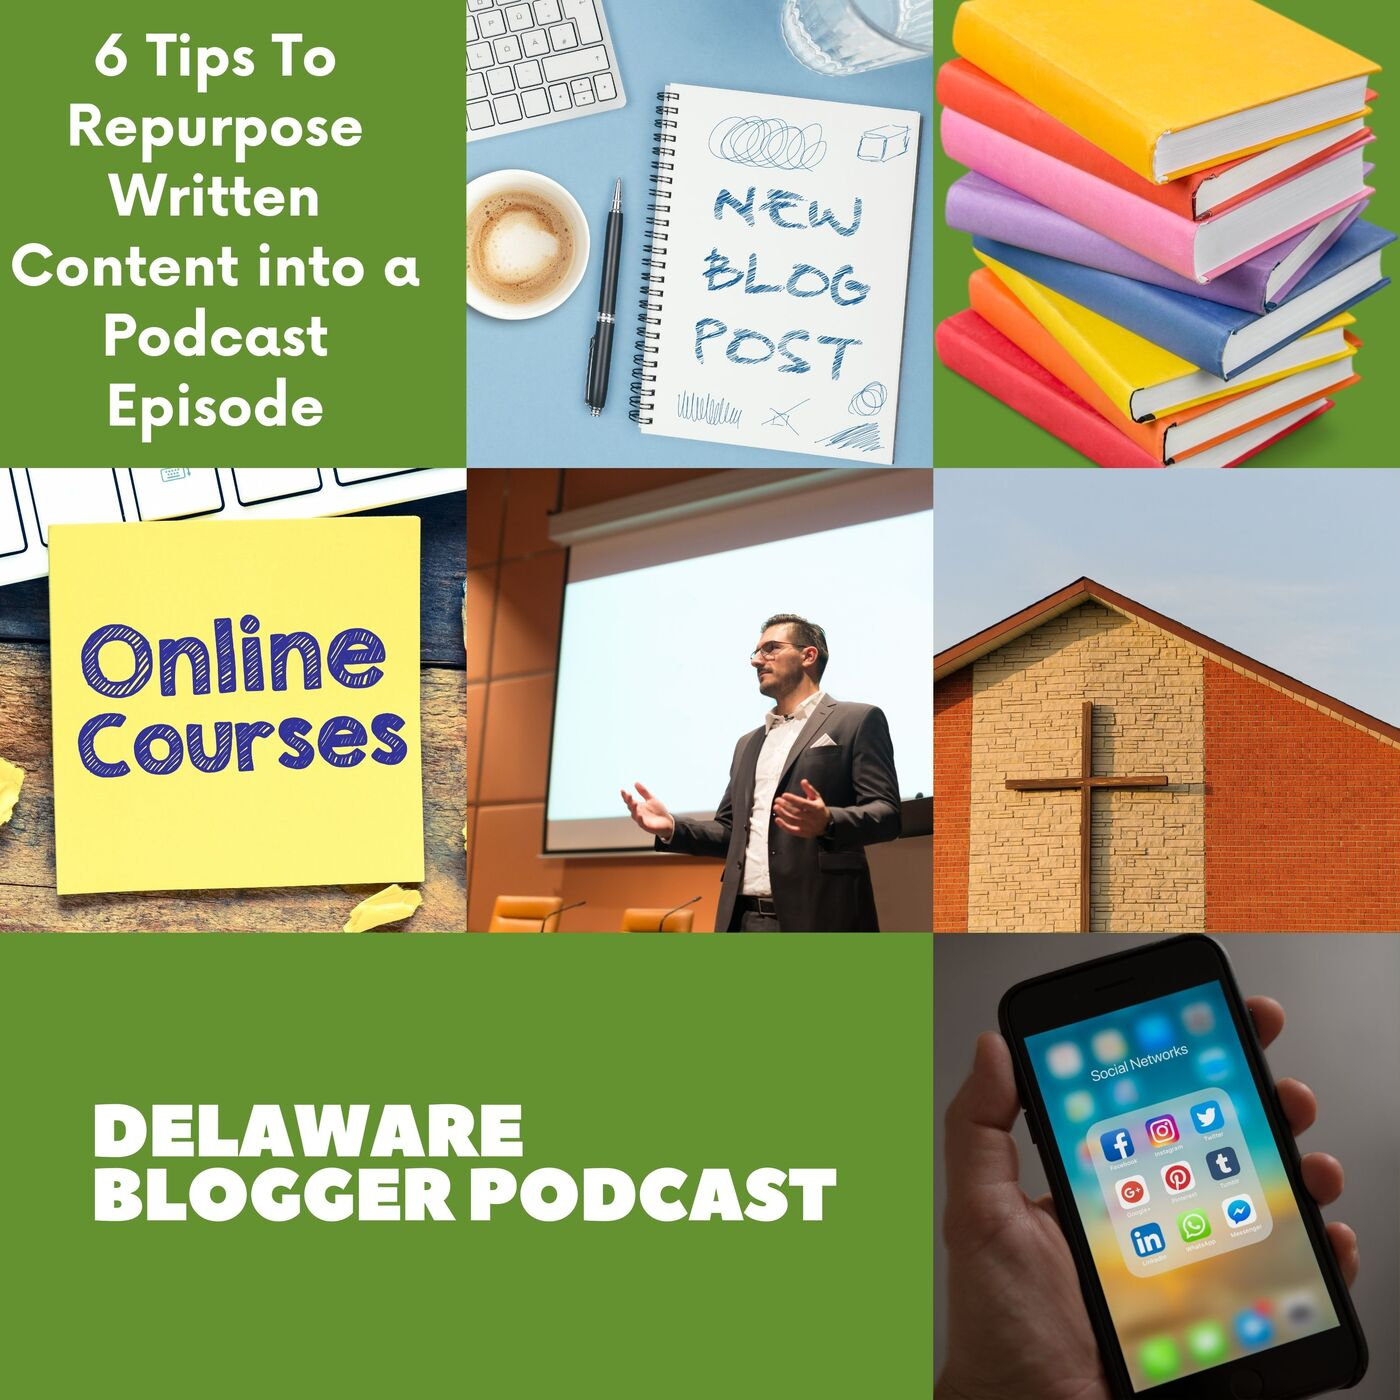 6 Tips to Repurpose Written Content into a Podcast Episode